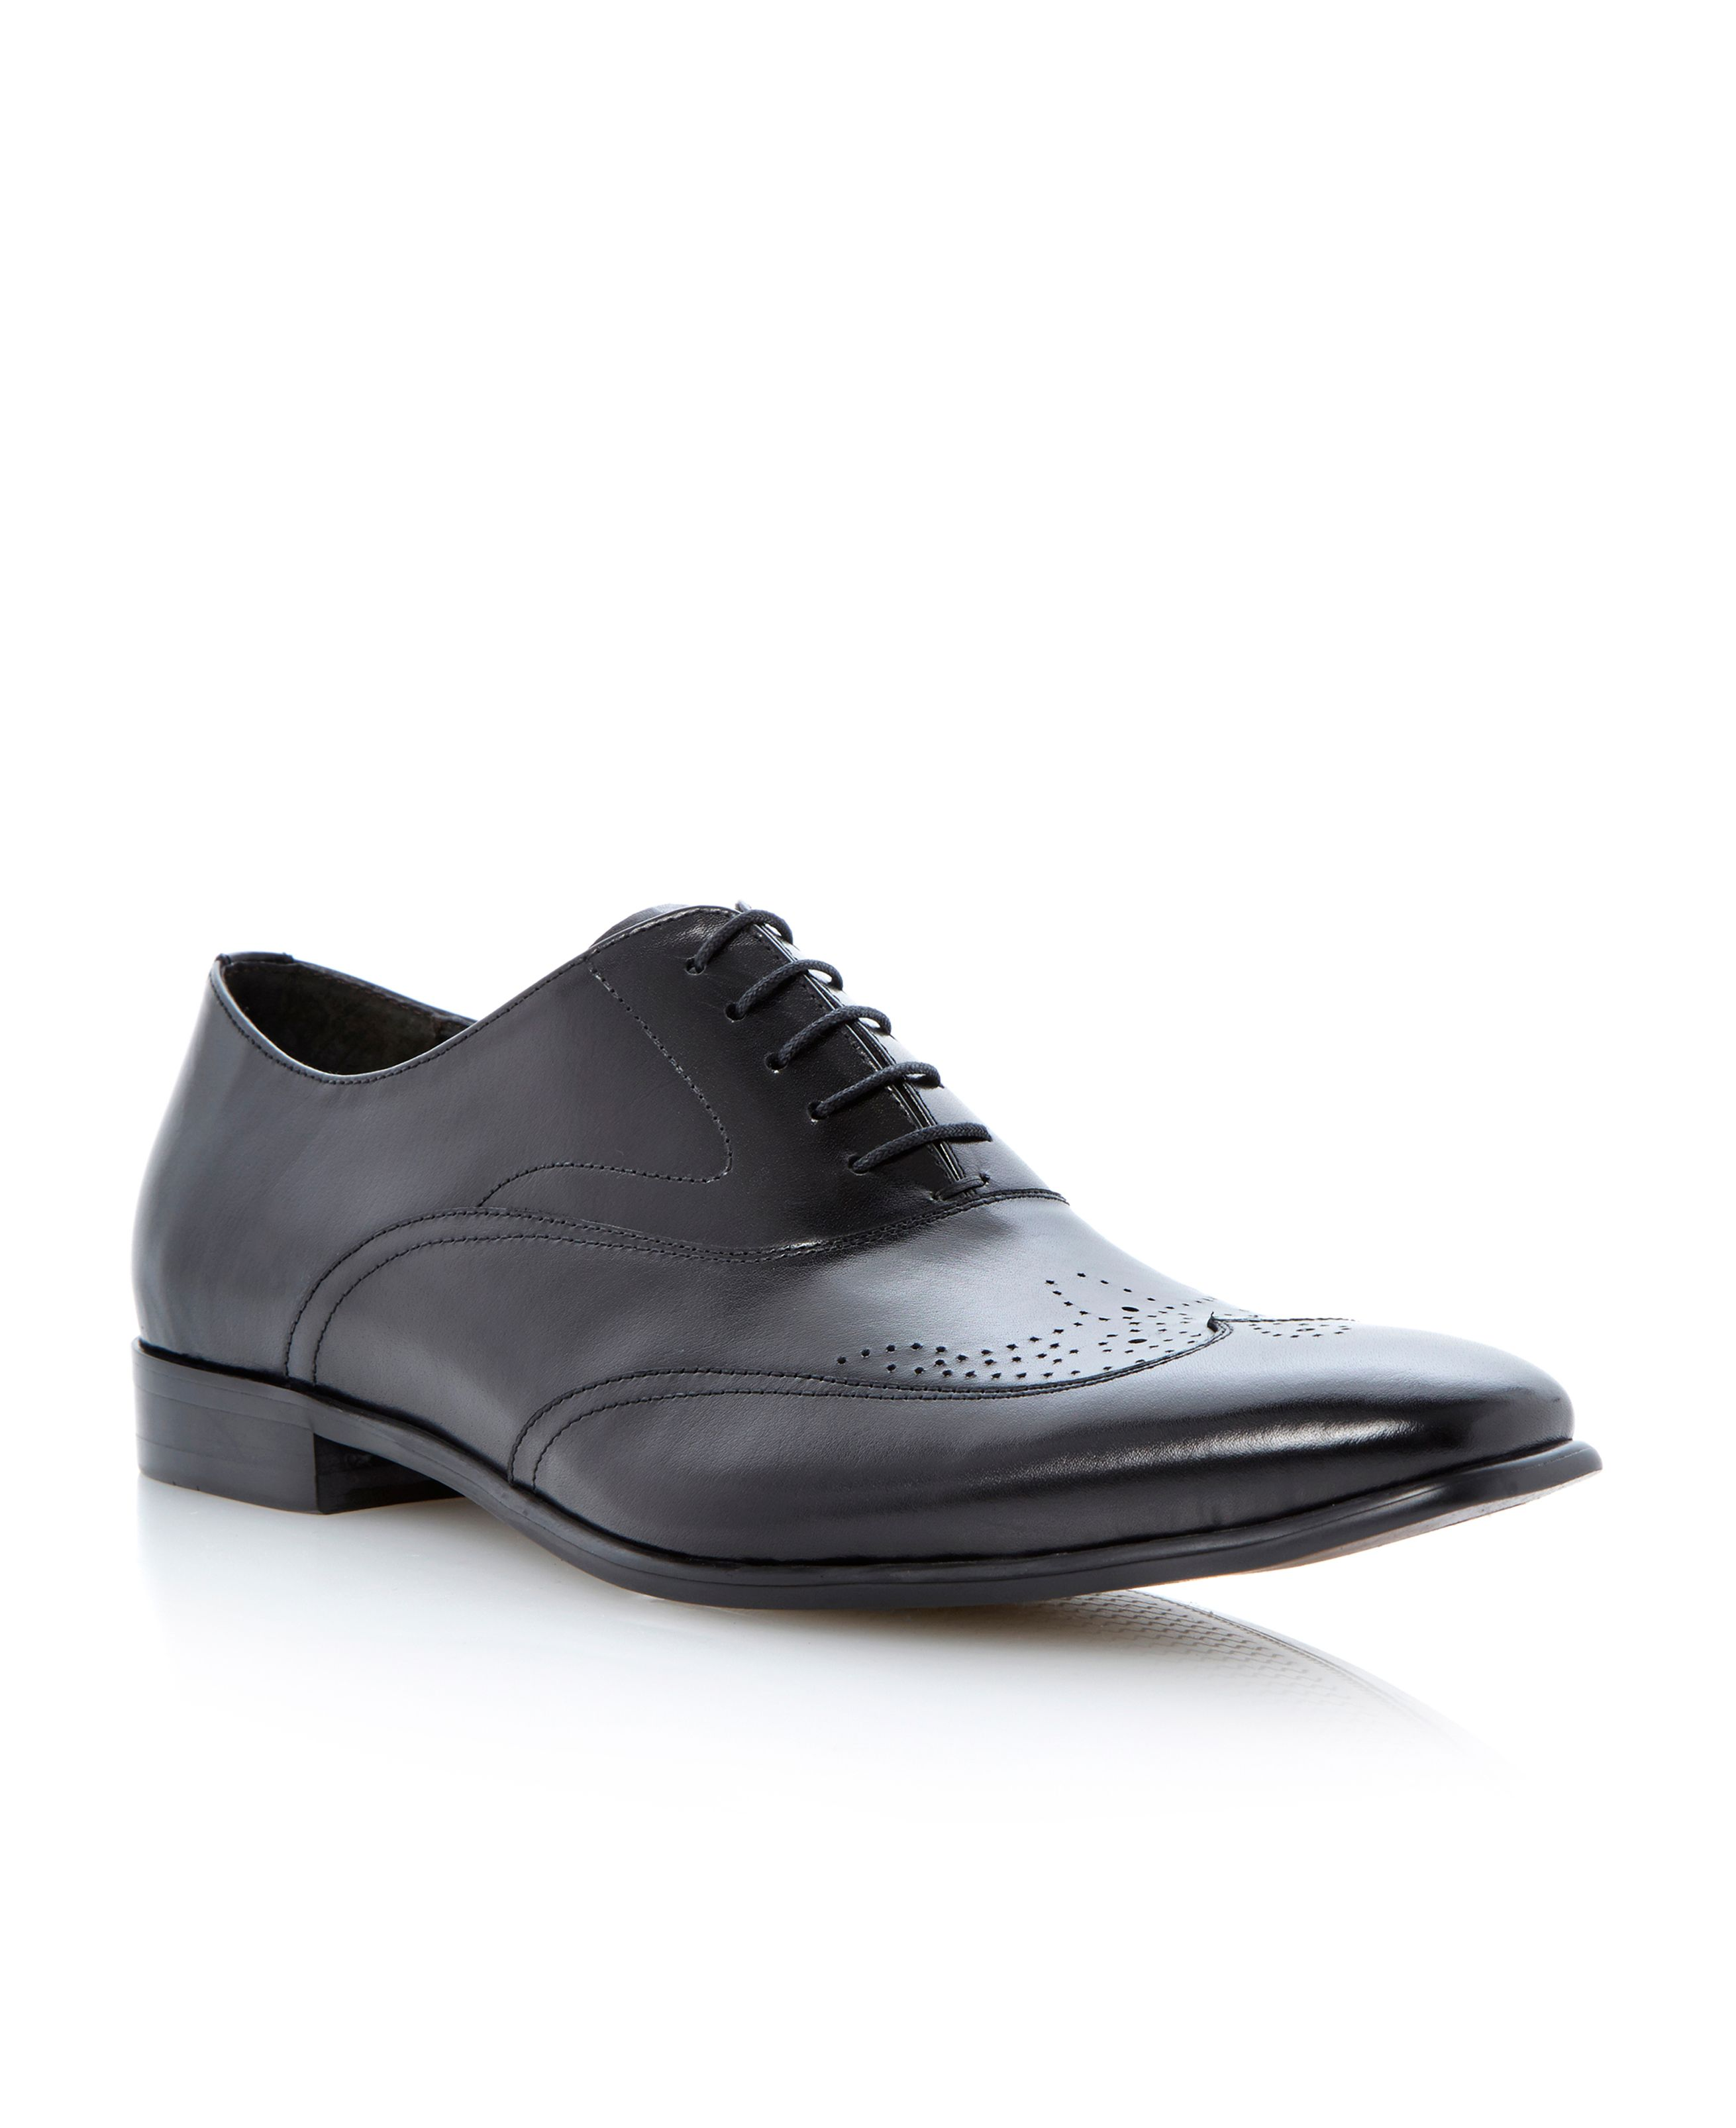 Admire lace up wingtip brogue oxford shoes